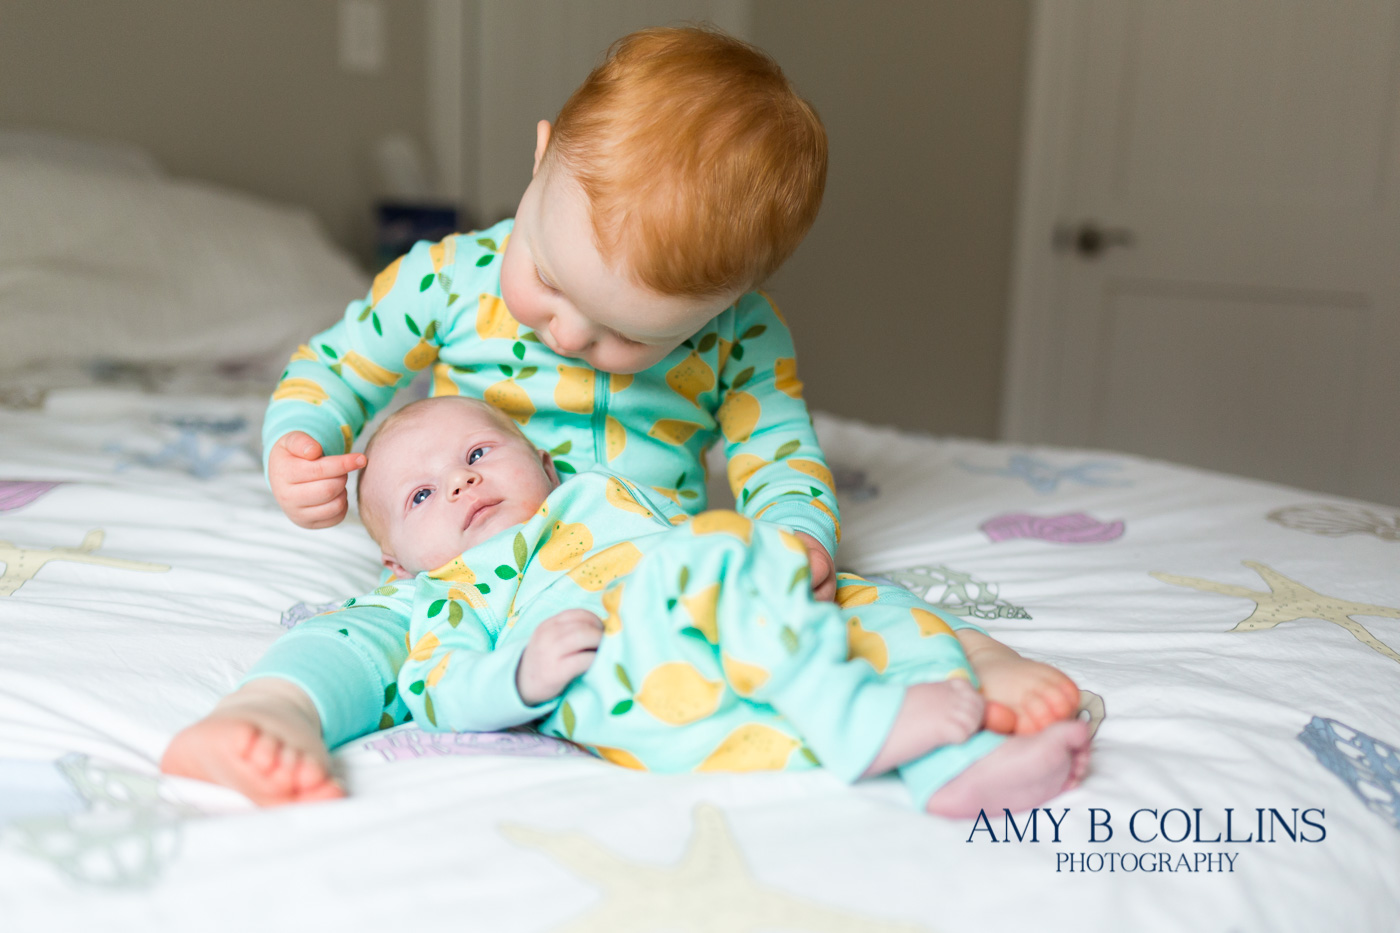 Amy_B_Collins_Photographer_Needham - 20.jpg